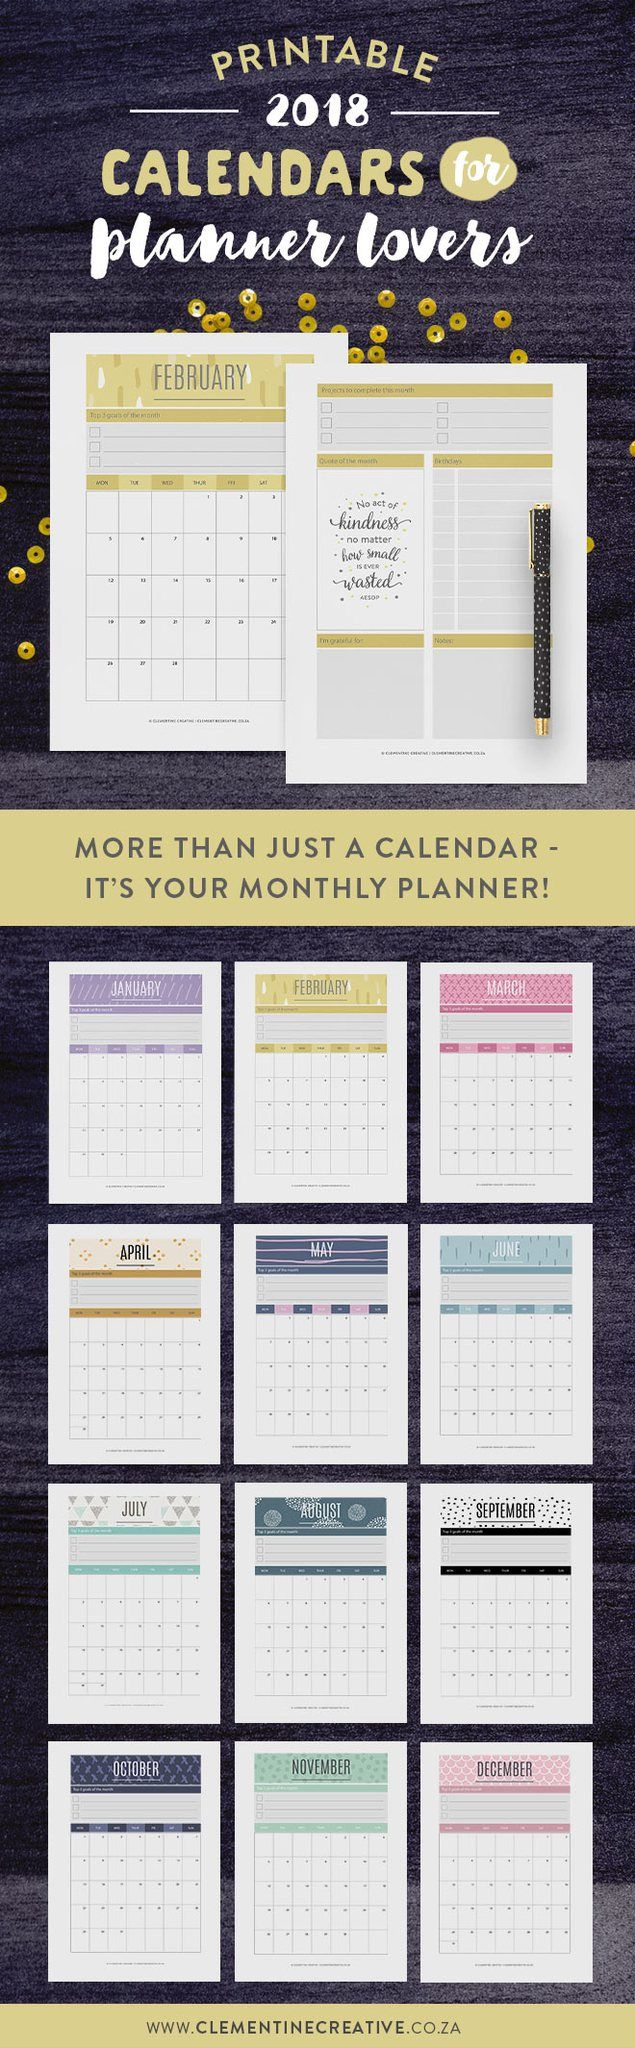 It's more than just a calendar - it's your monthly planner! Keep up with events, important dates, birthdays, exams or even your fitness routine with this modern printable 2018 calendar. Be inspired throughout the month by the motivational quote and write down reminders, bills to pay, etc. Click here to buy.